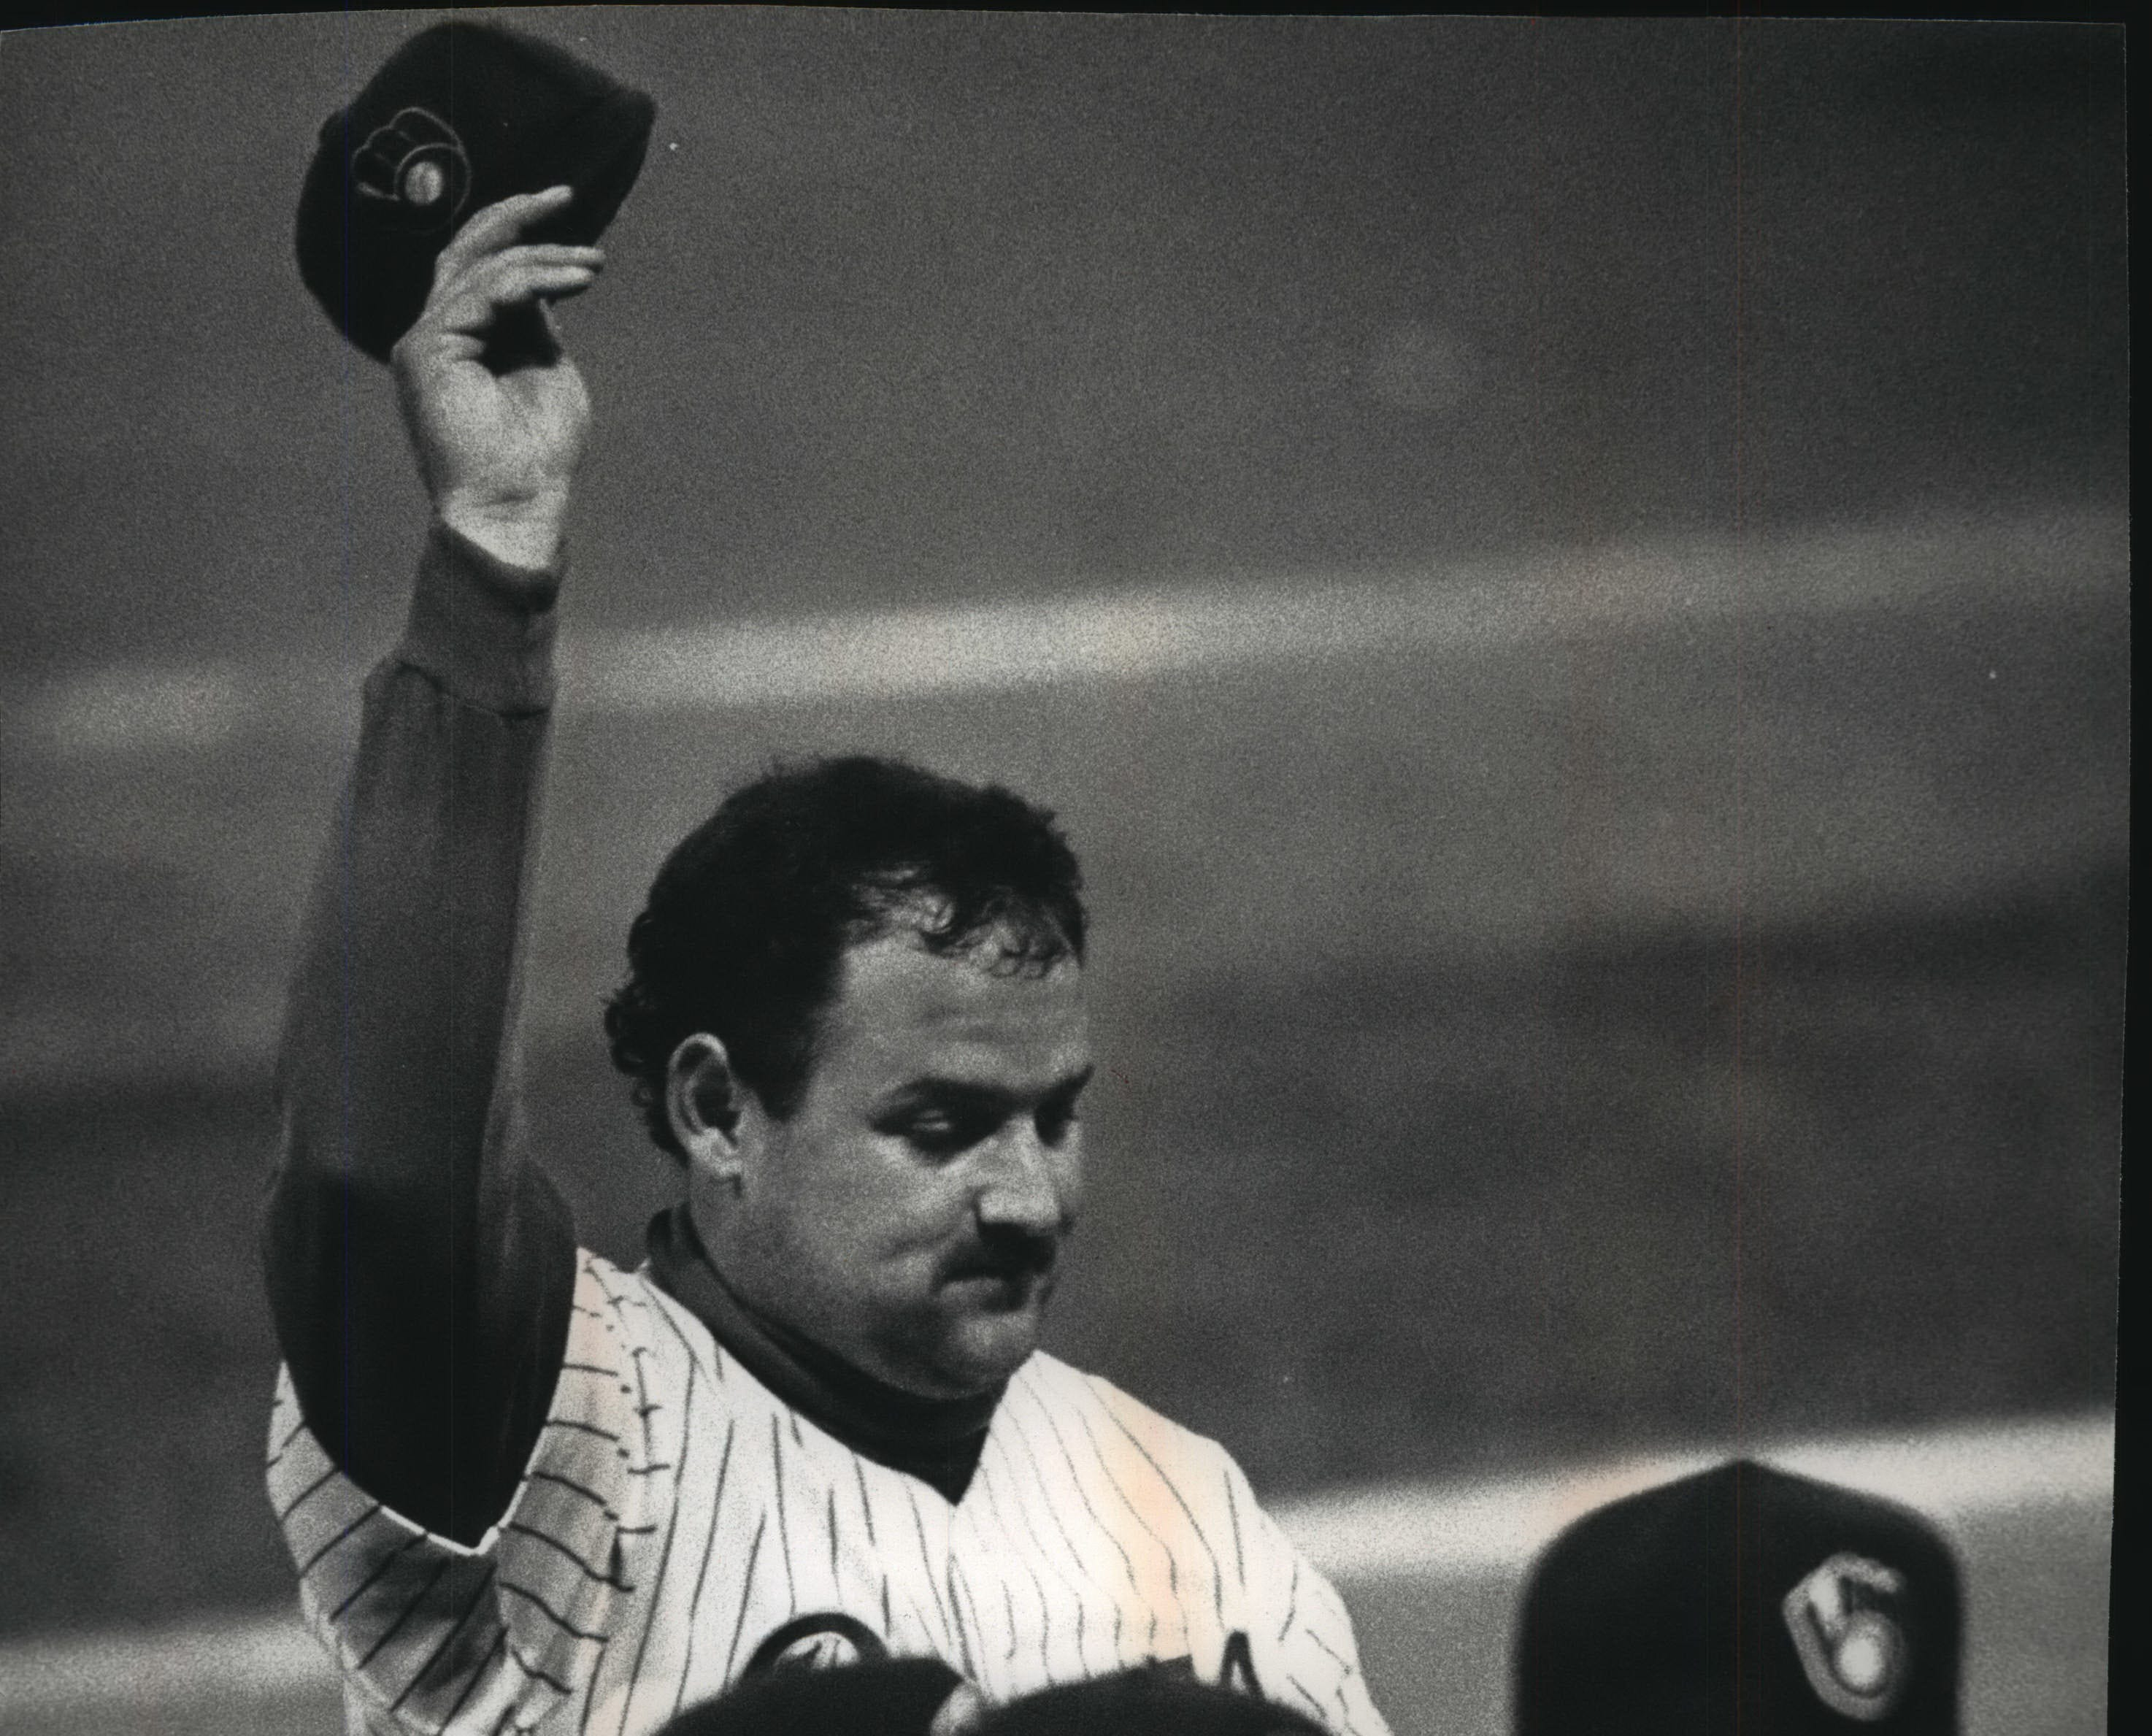 Pitcher Chris Bosio tips his cap after throwing a shutout in 1992.